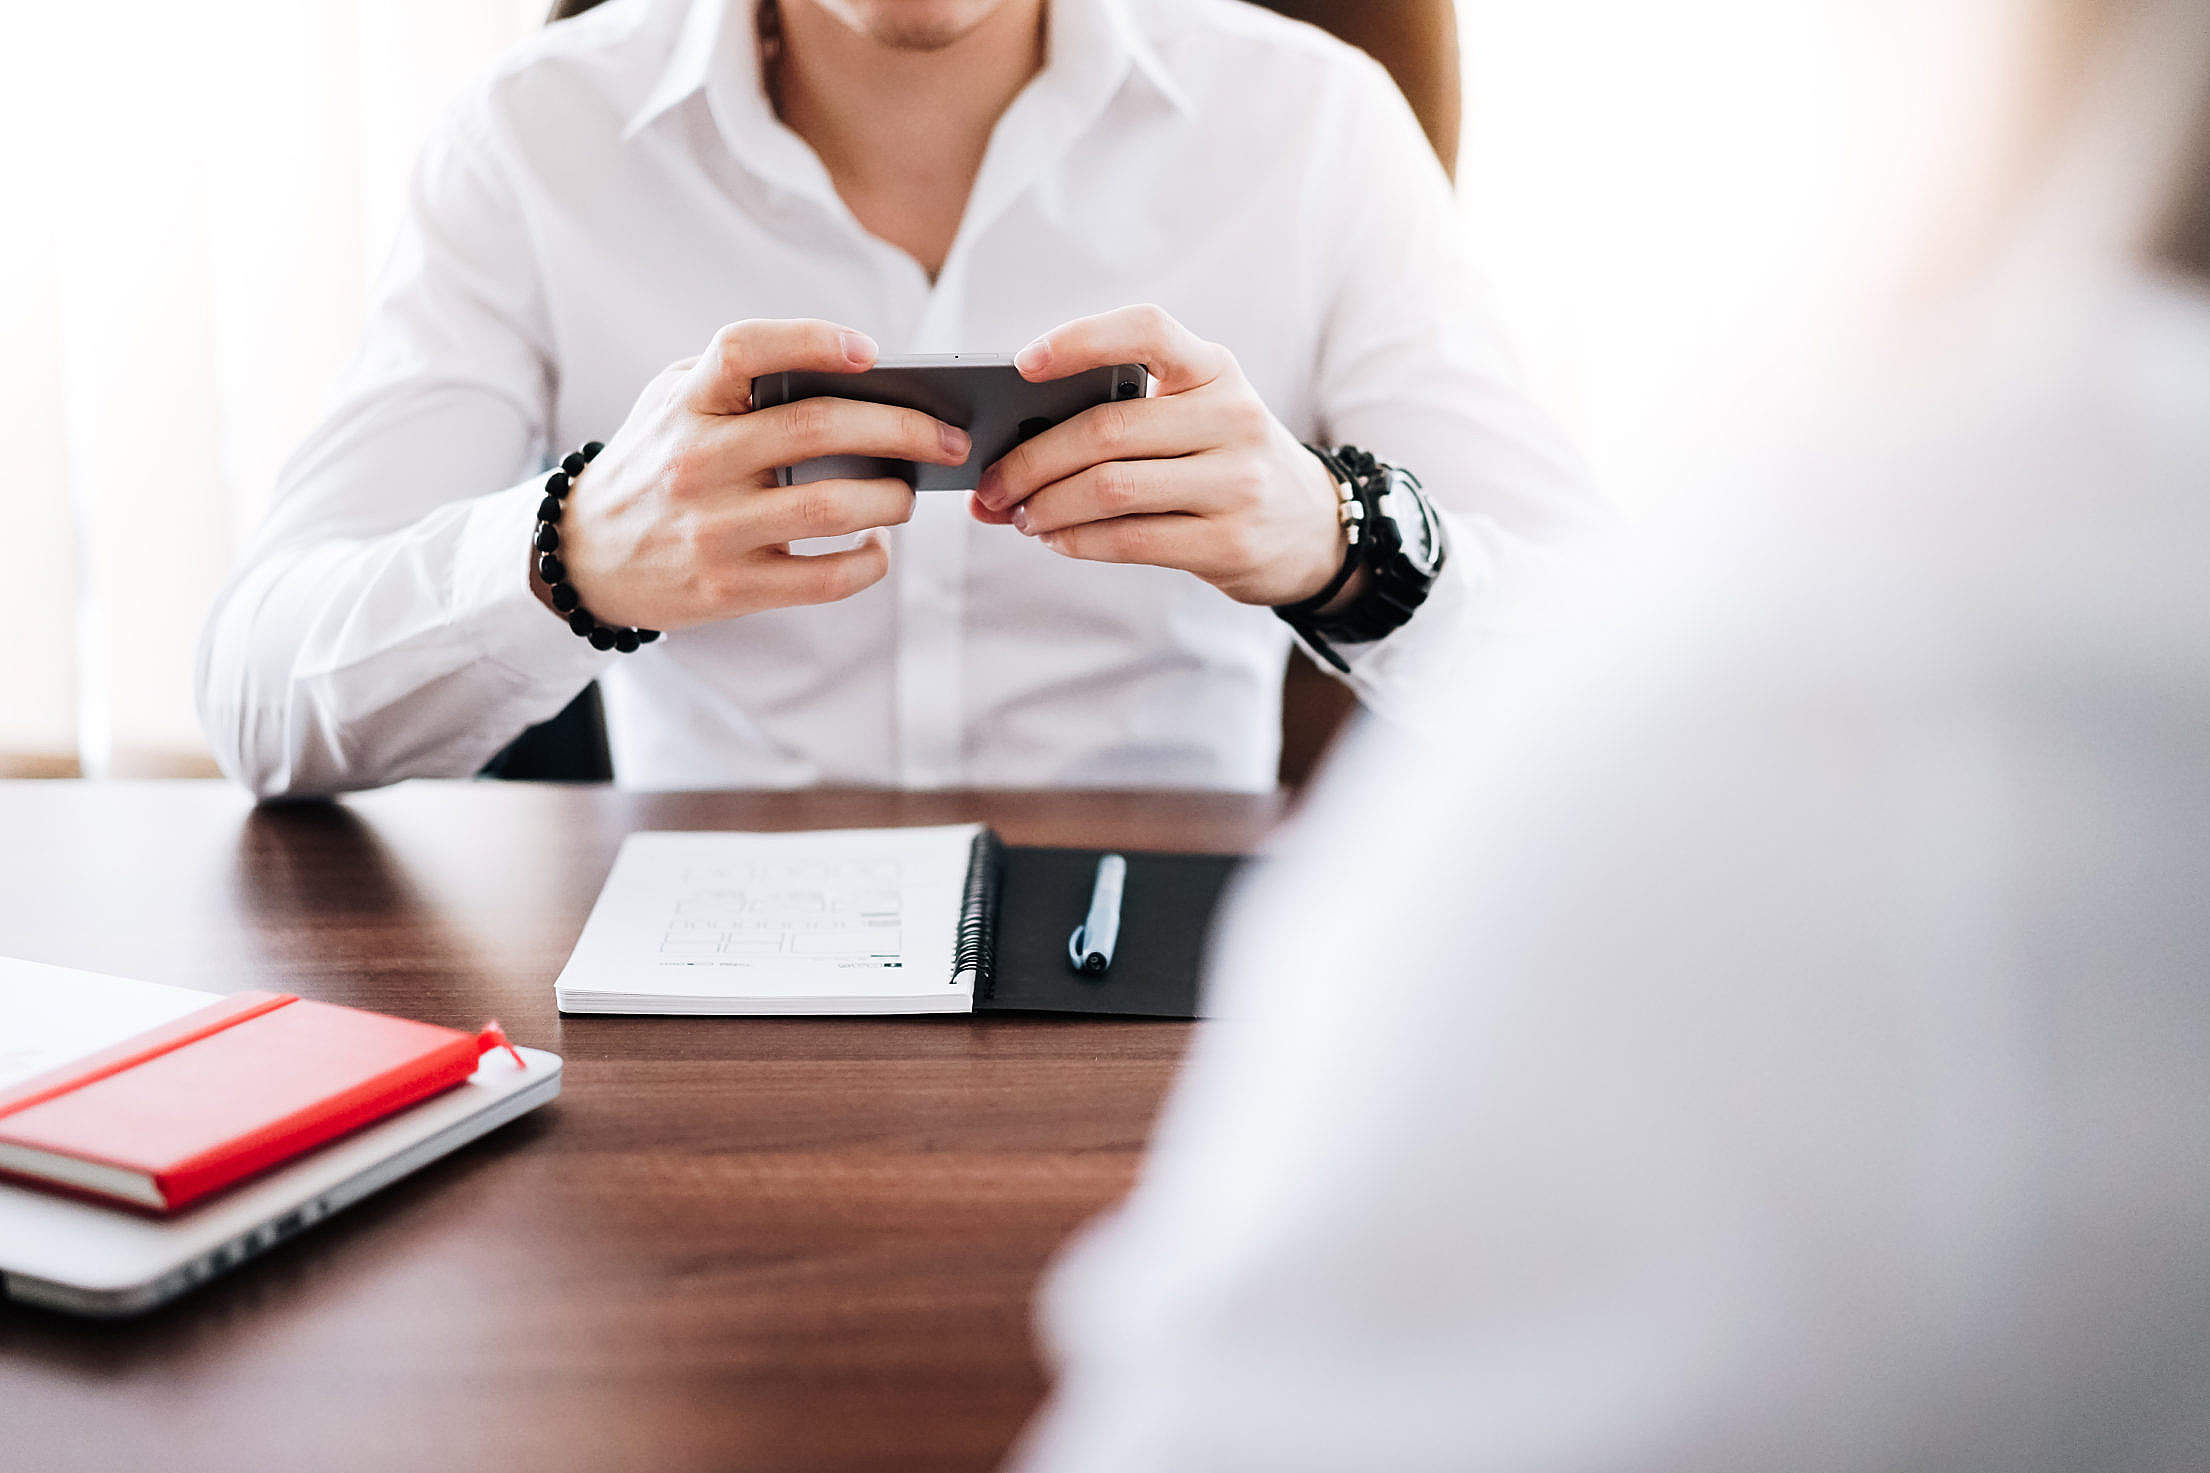 Business Man Working on His Smartphone in The Office Free Stock Photo